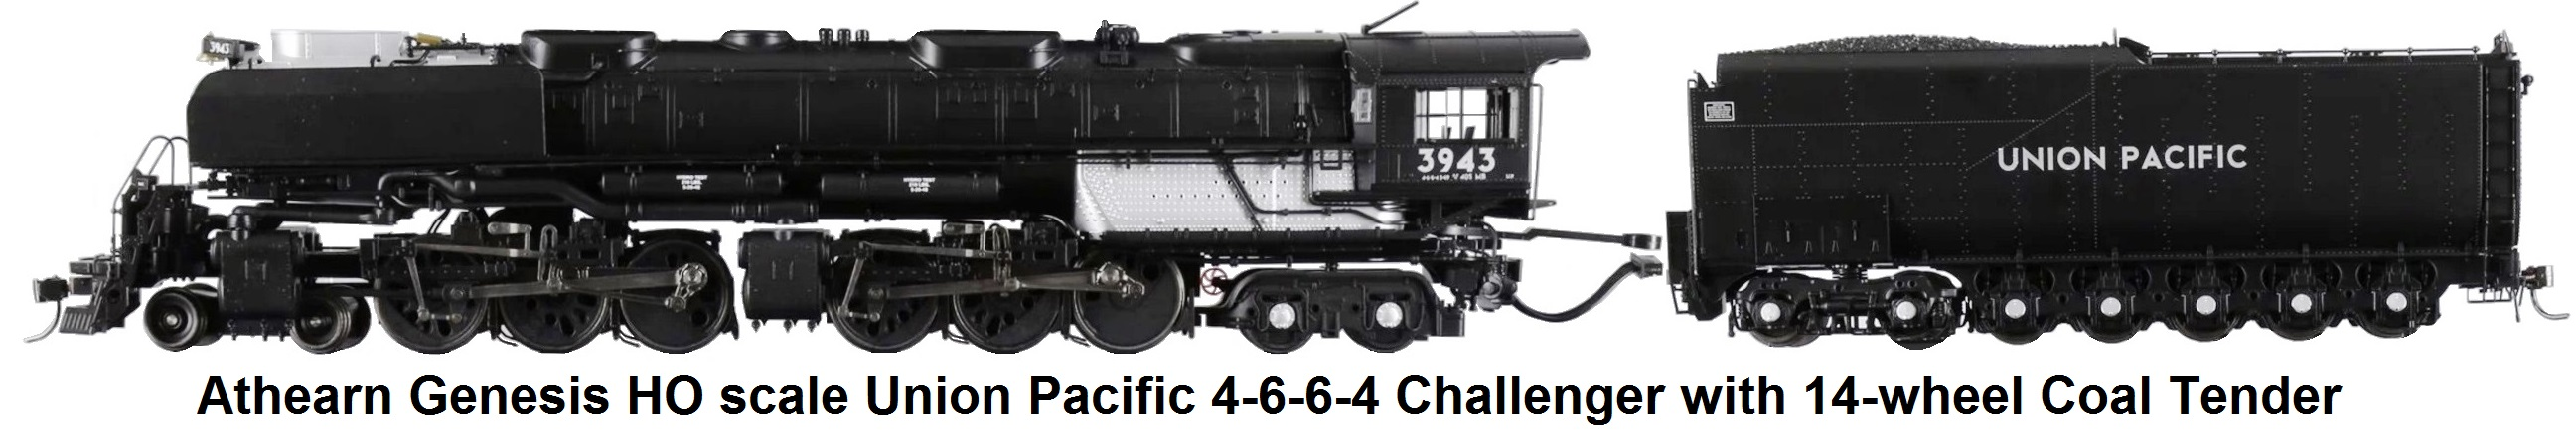 Athearn Union Pacific HO Genesis #3943 4-6-6-4 Challenger